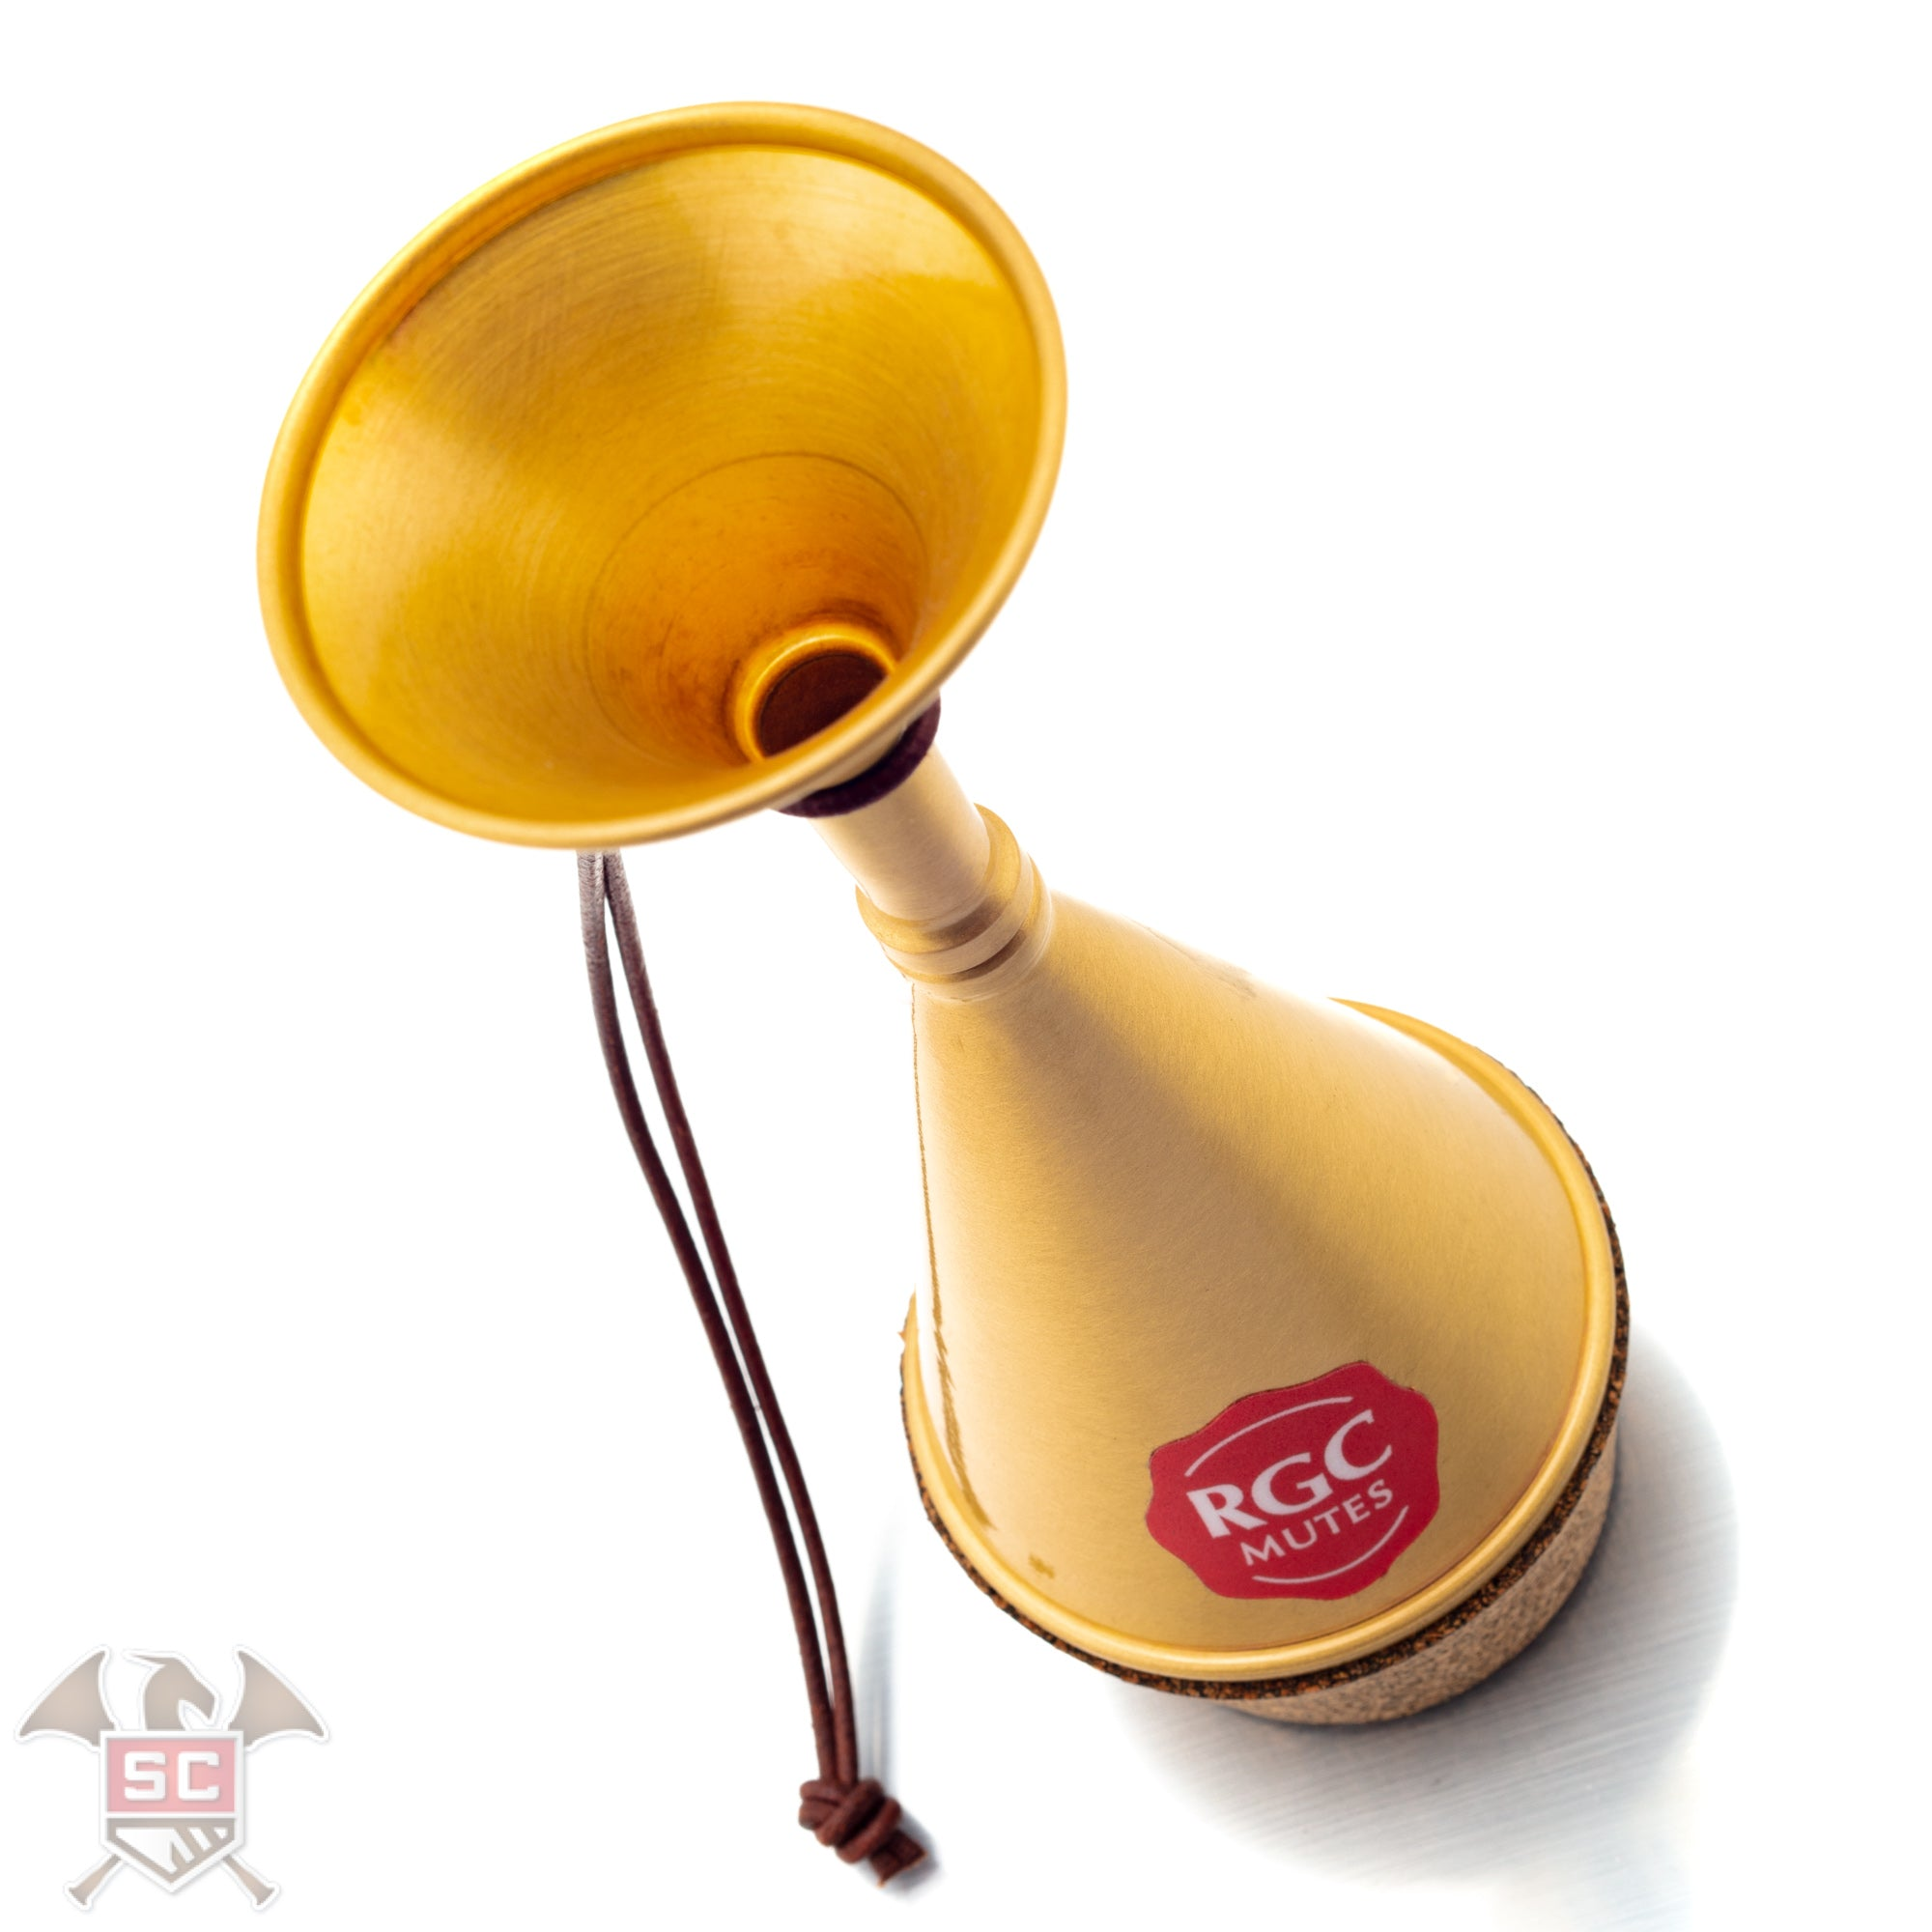 RGC TPA09 brass stopping mute for french horn